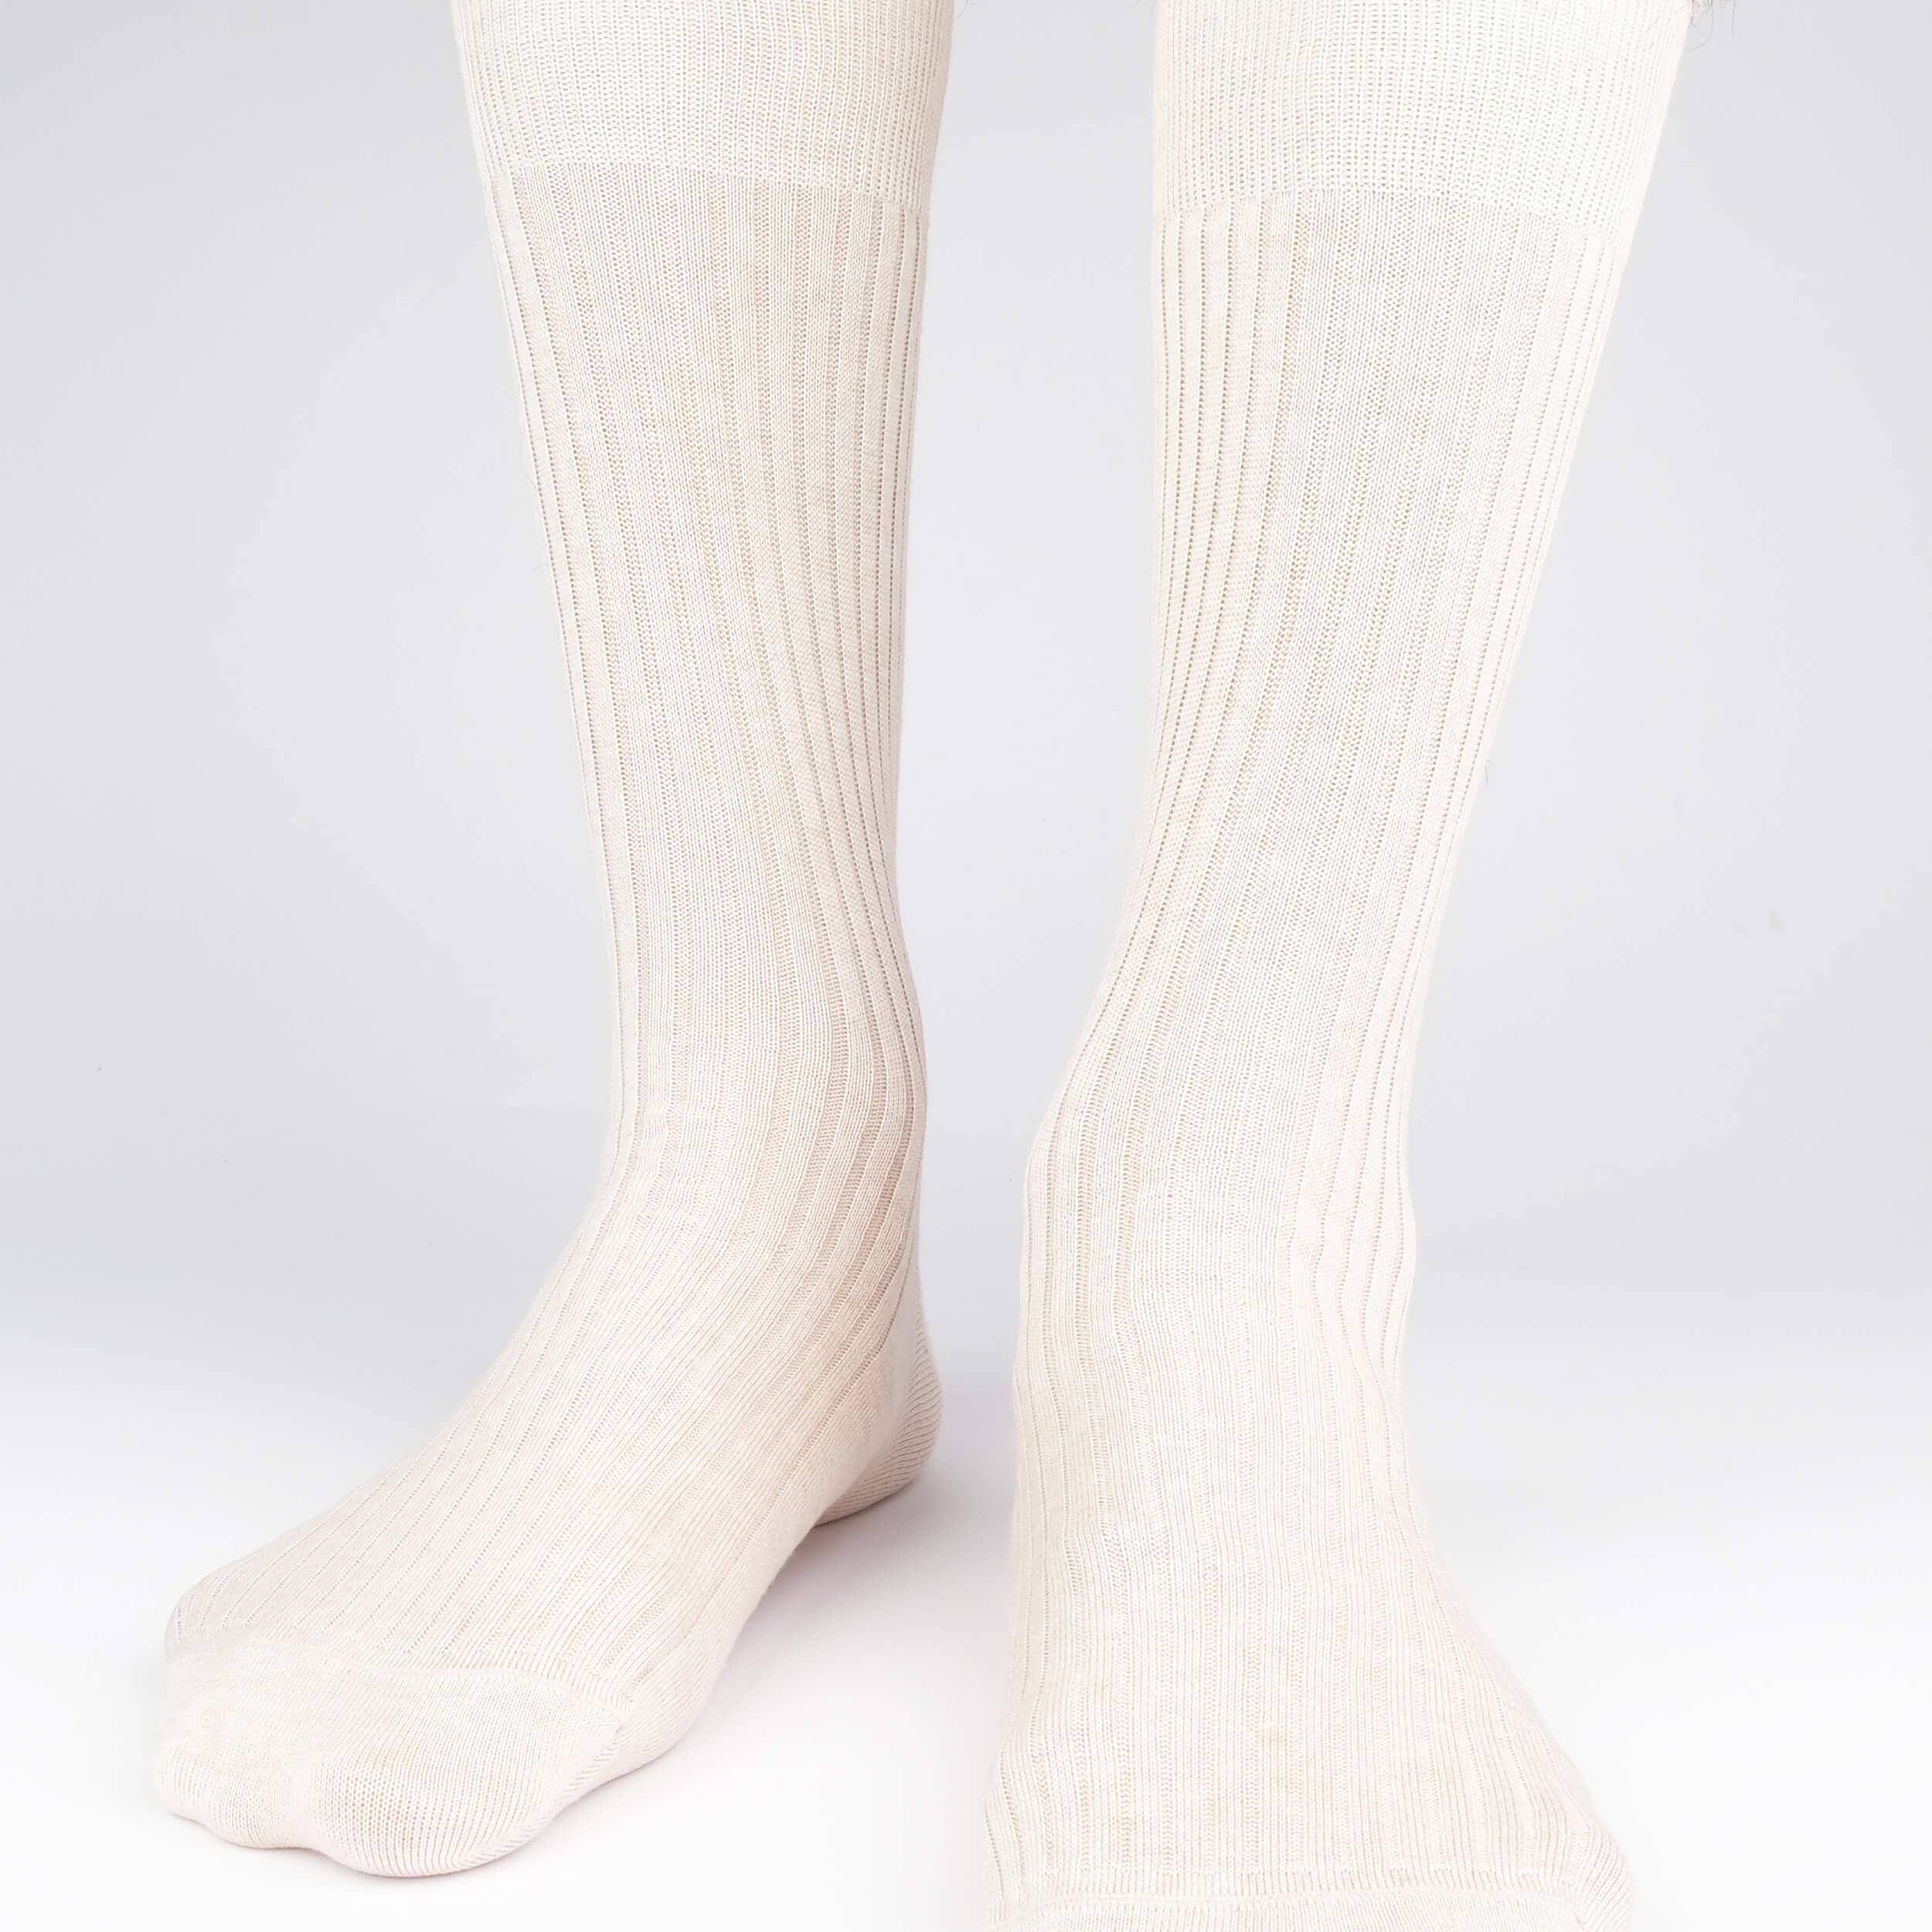 Mens Socks - Thousand Ribs Men's Socks - Oatmeal⎪Etiquette Clothiers